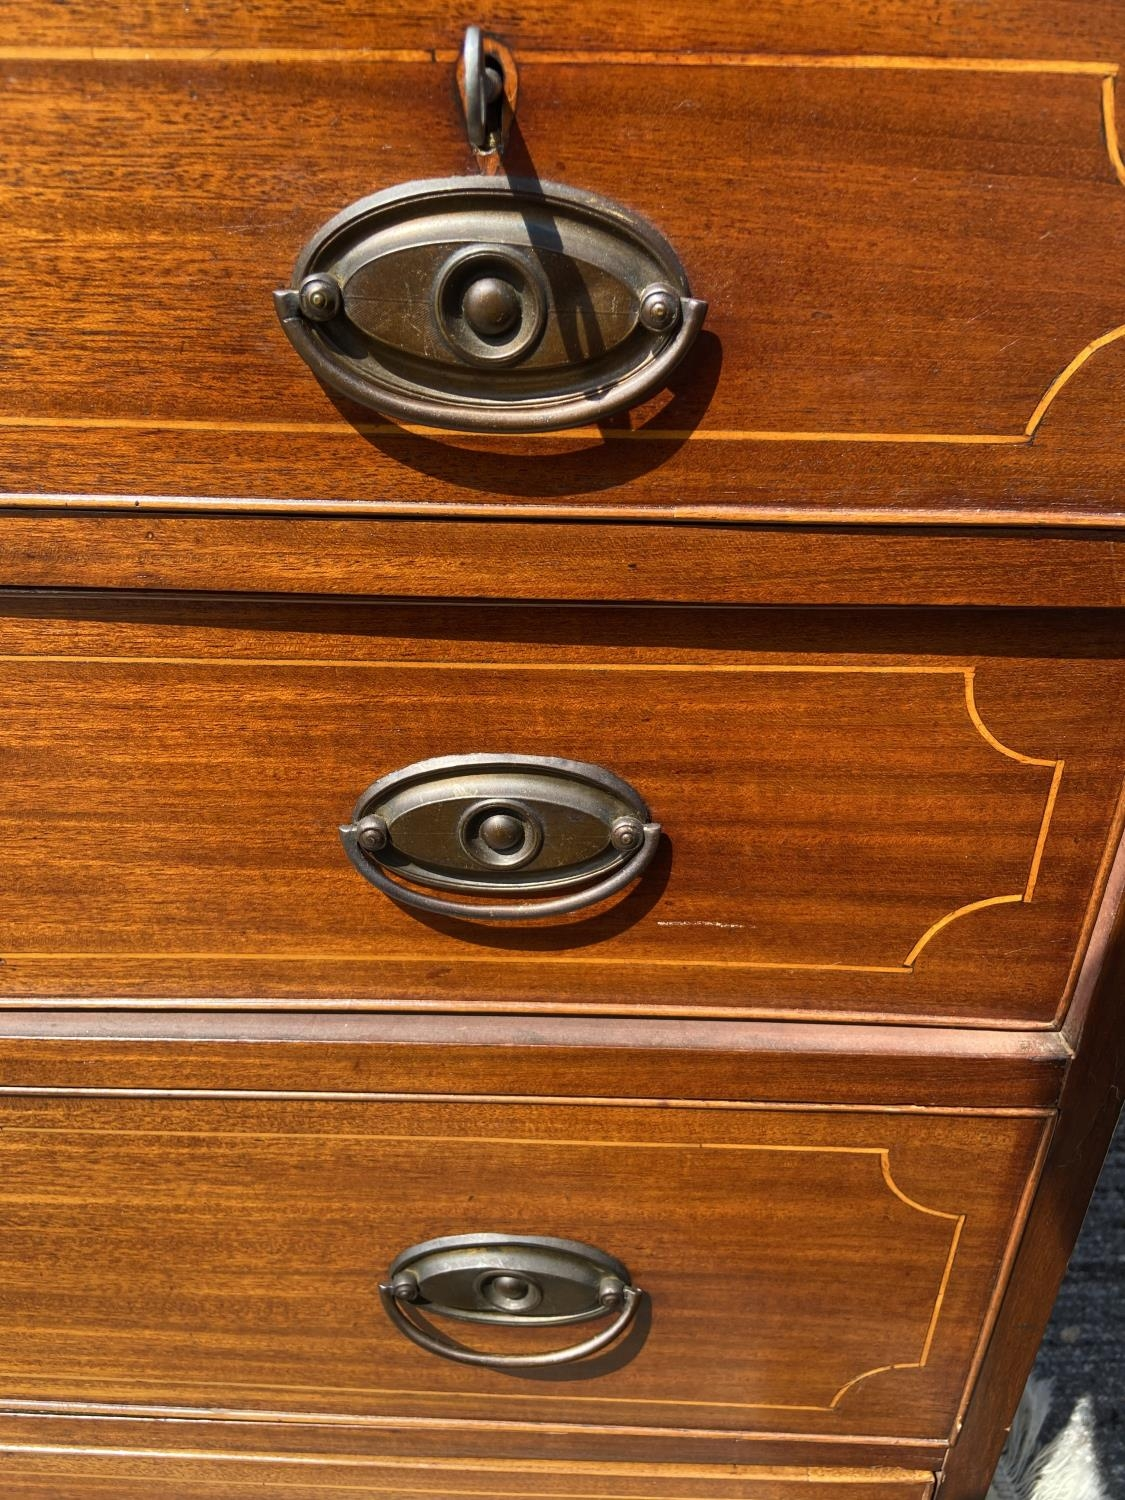 A Georgian/Early Victorian inlaid chest of drawers [3 over 3] [95 x 116 x 52cm] - Image 6 of 6